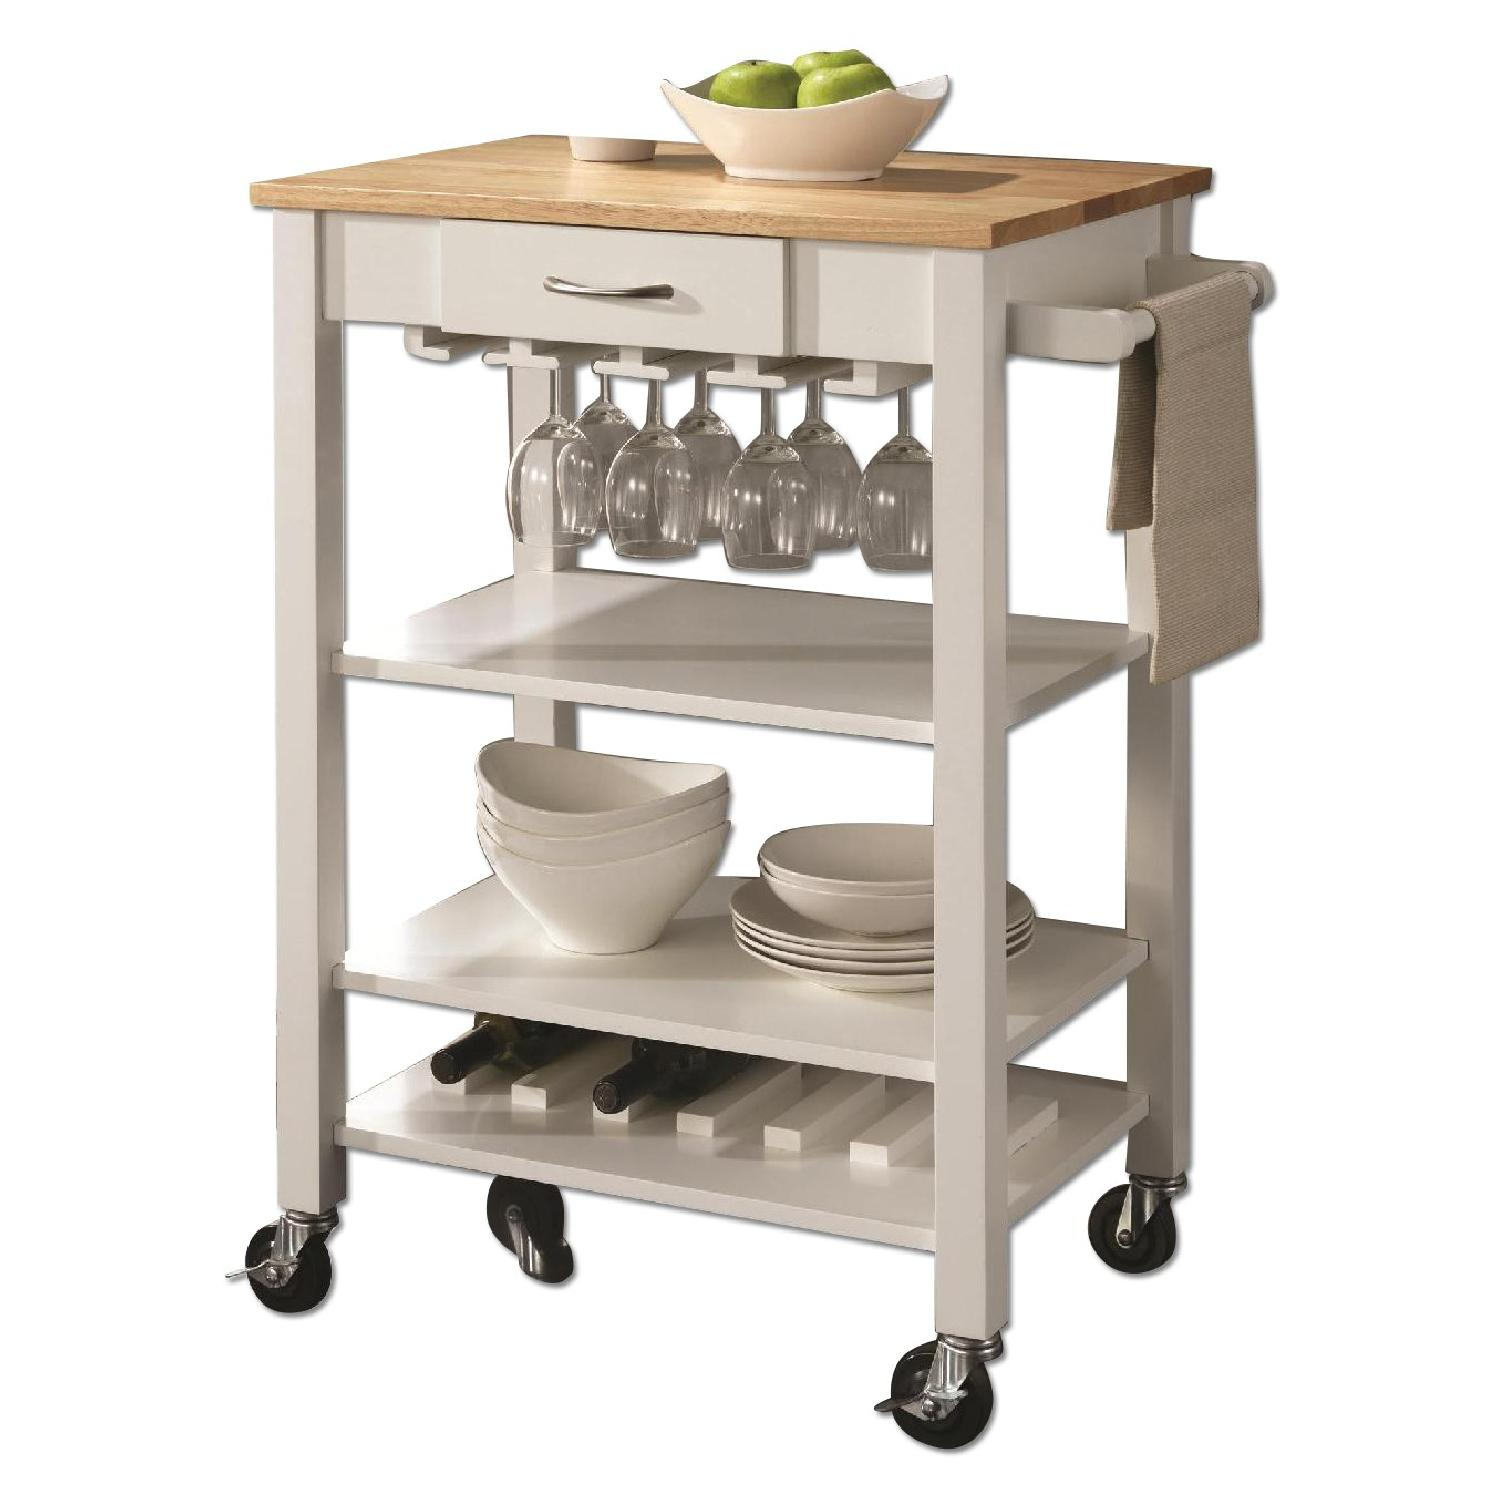 Natural Kitchen Cart With Butcher Block Top : White/Natural Kitchen Cart w/ Butcher Block Top - AptDeco